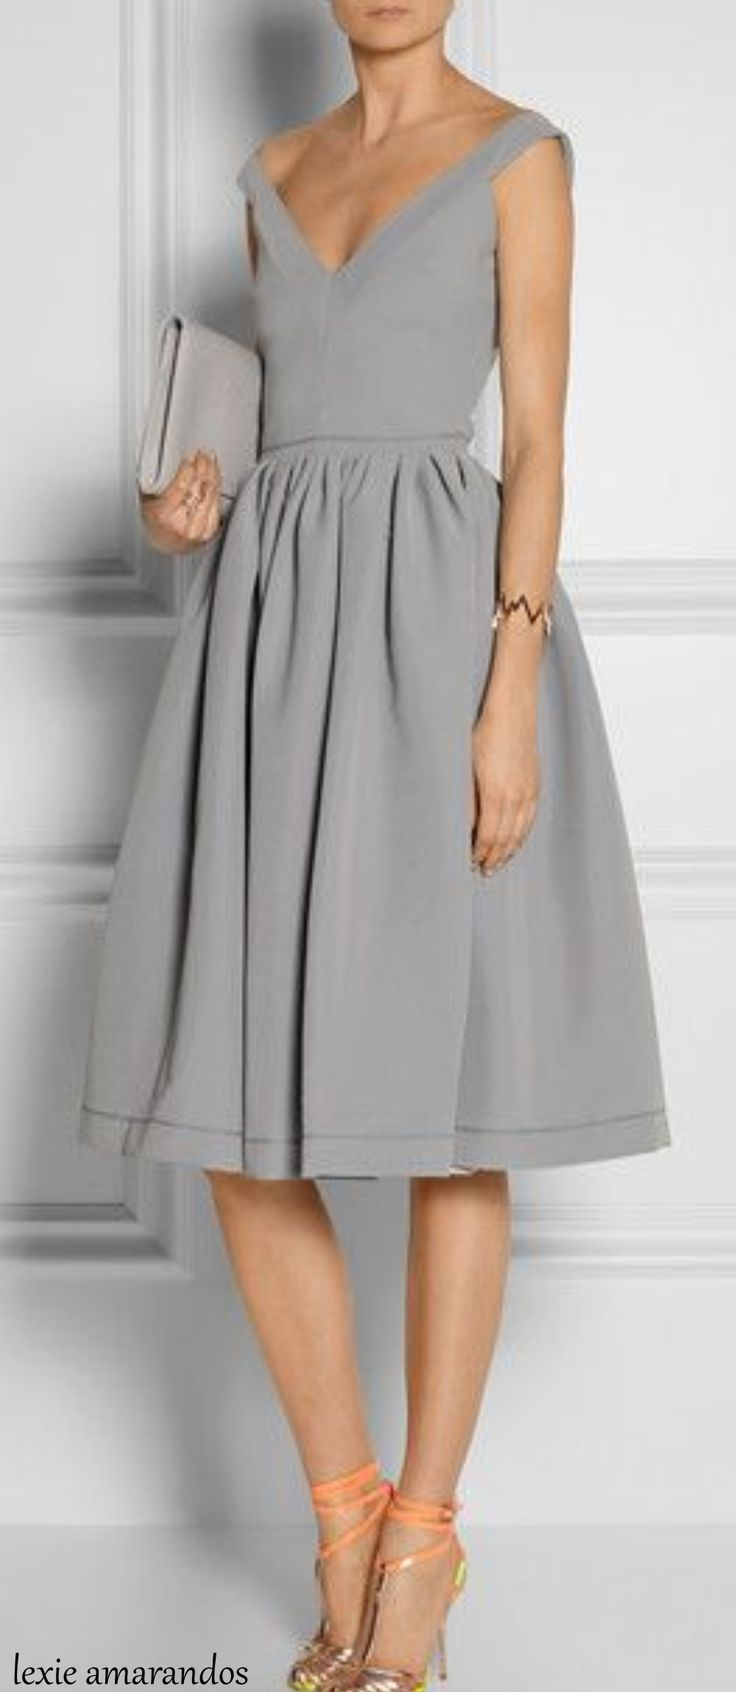 Beautiful dress. Wonderful for tall and thin women. Elegant and classic.